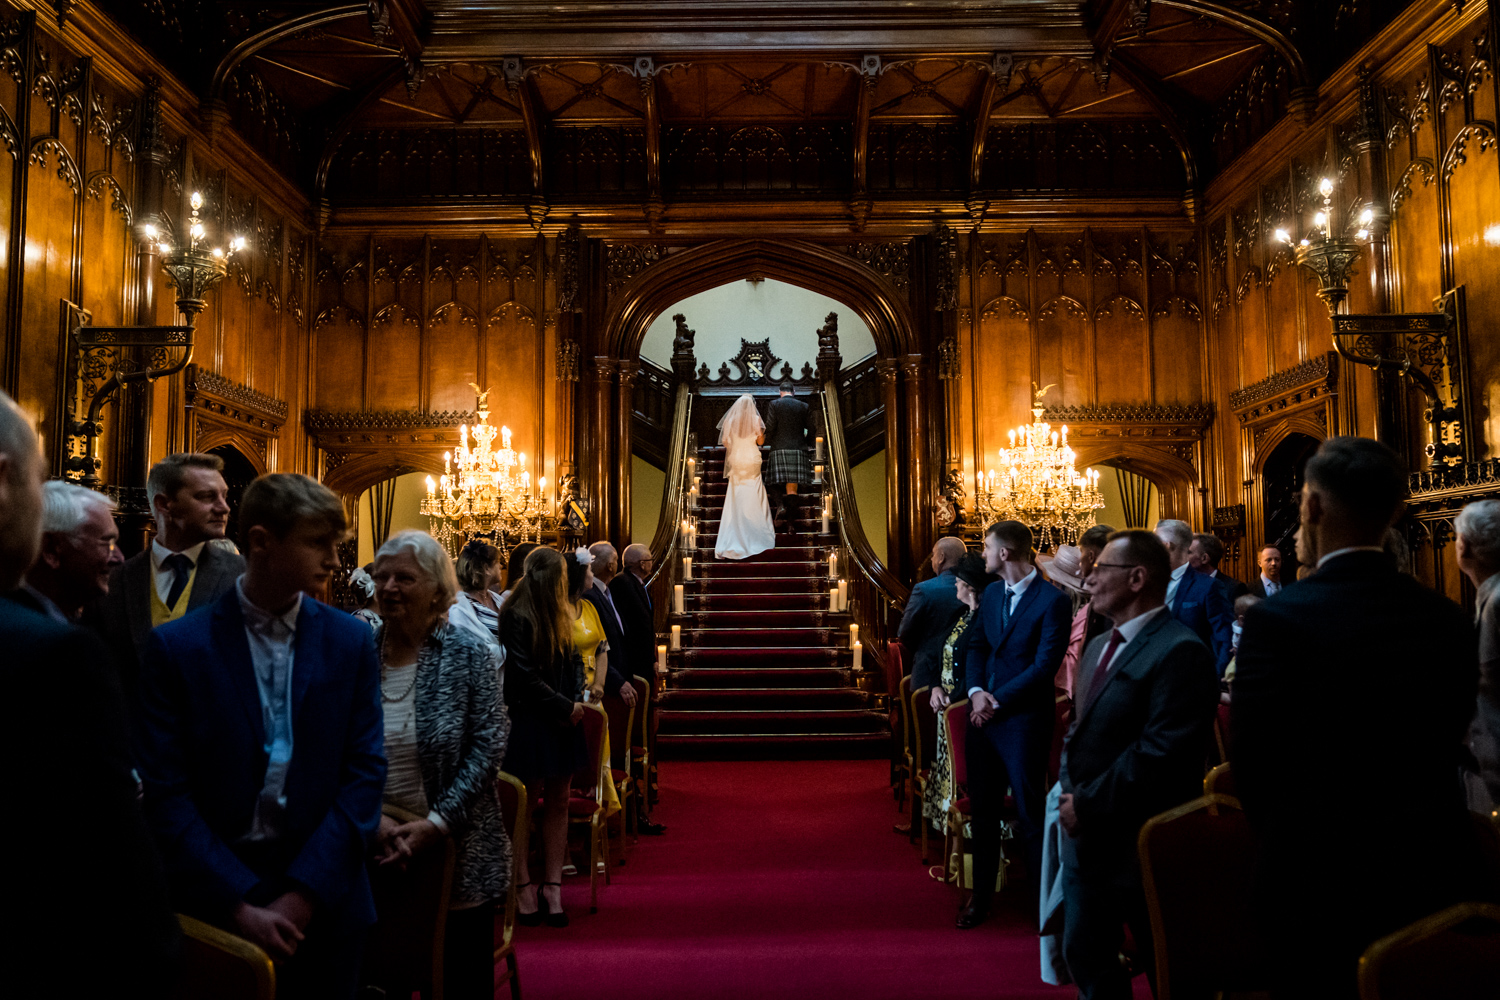 Allerton Castle Wedding Photography - couple leaving the ceremony via the grand staircase